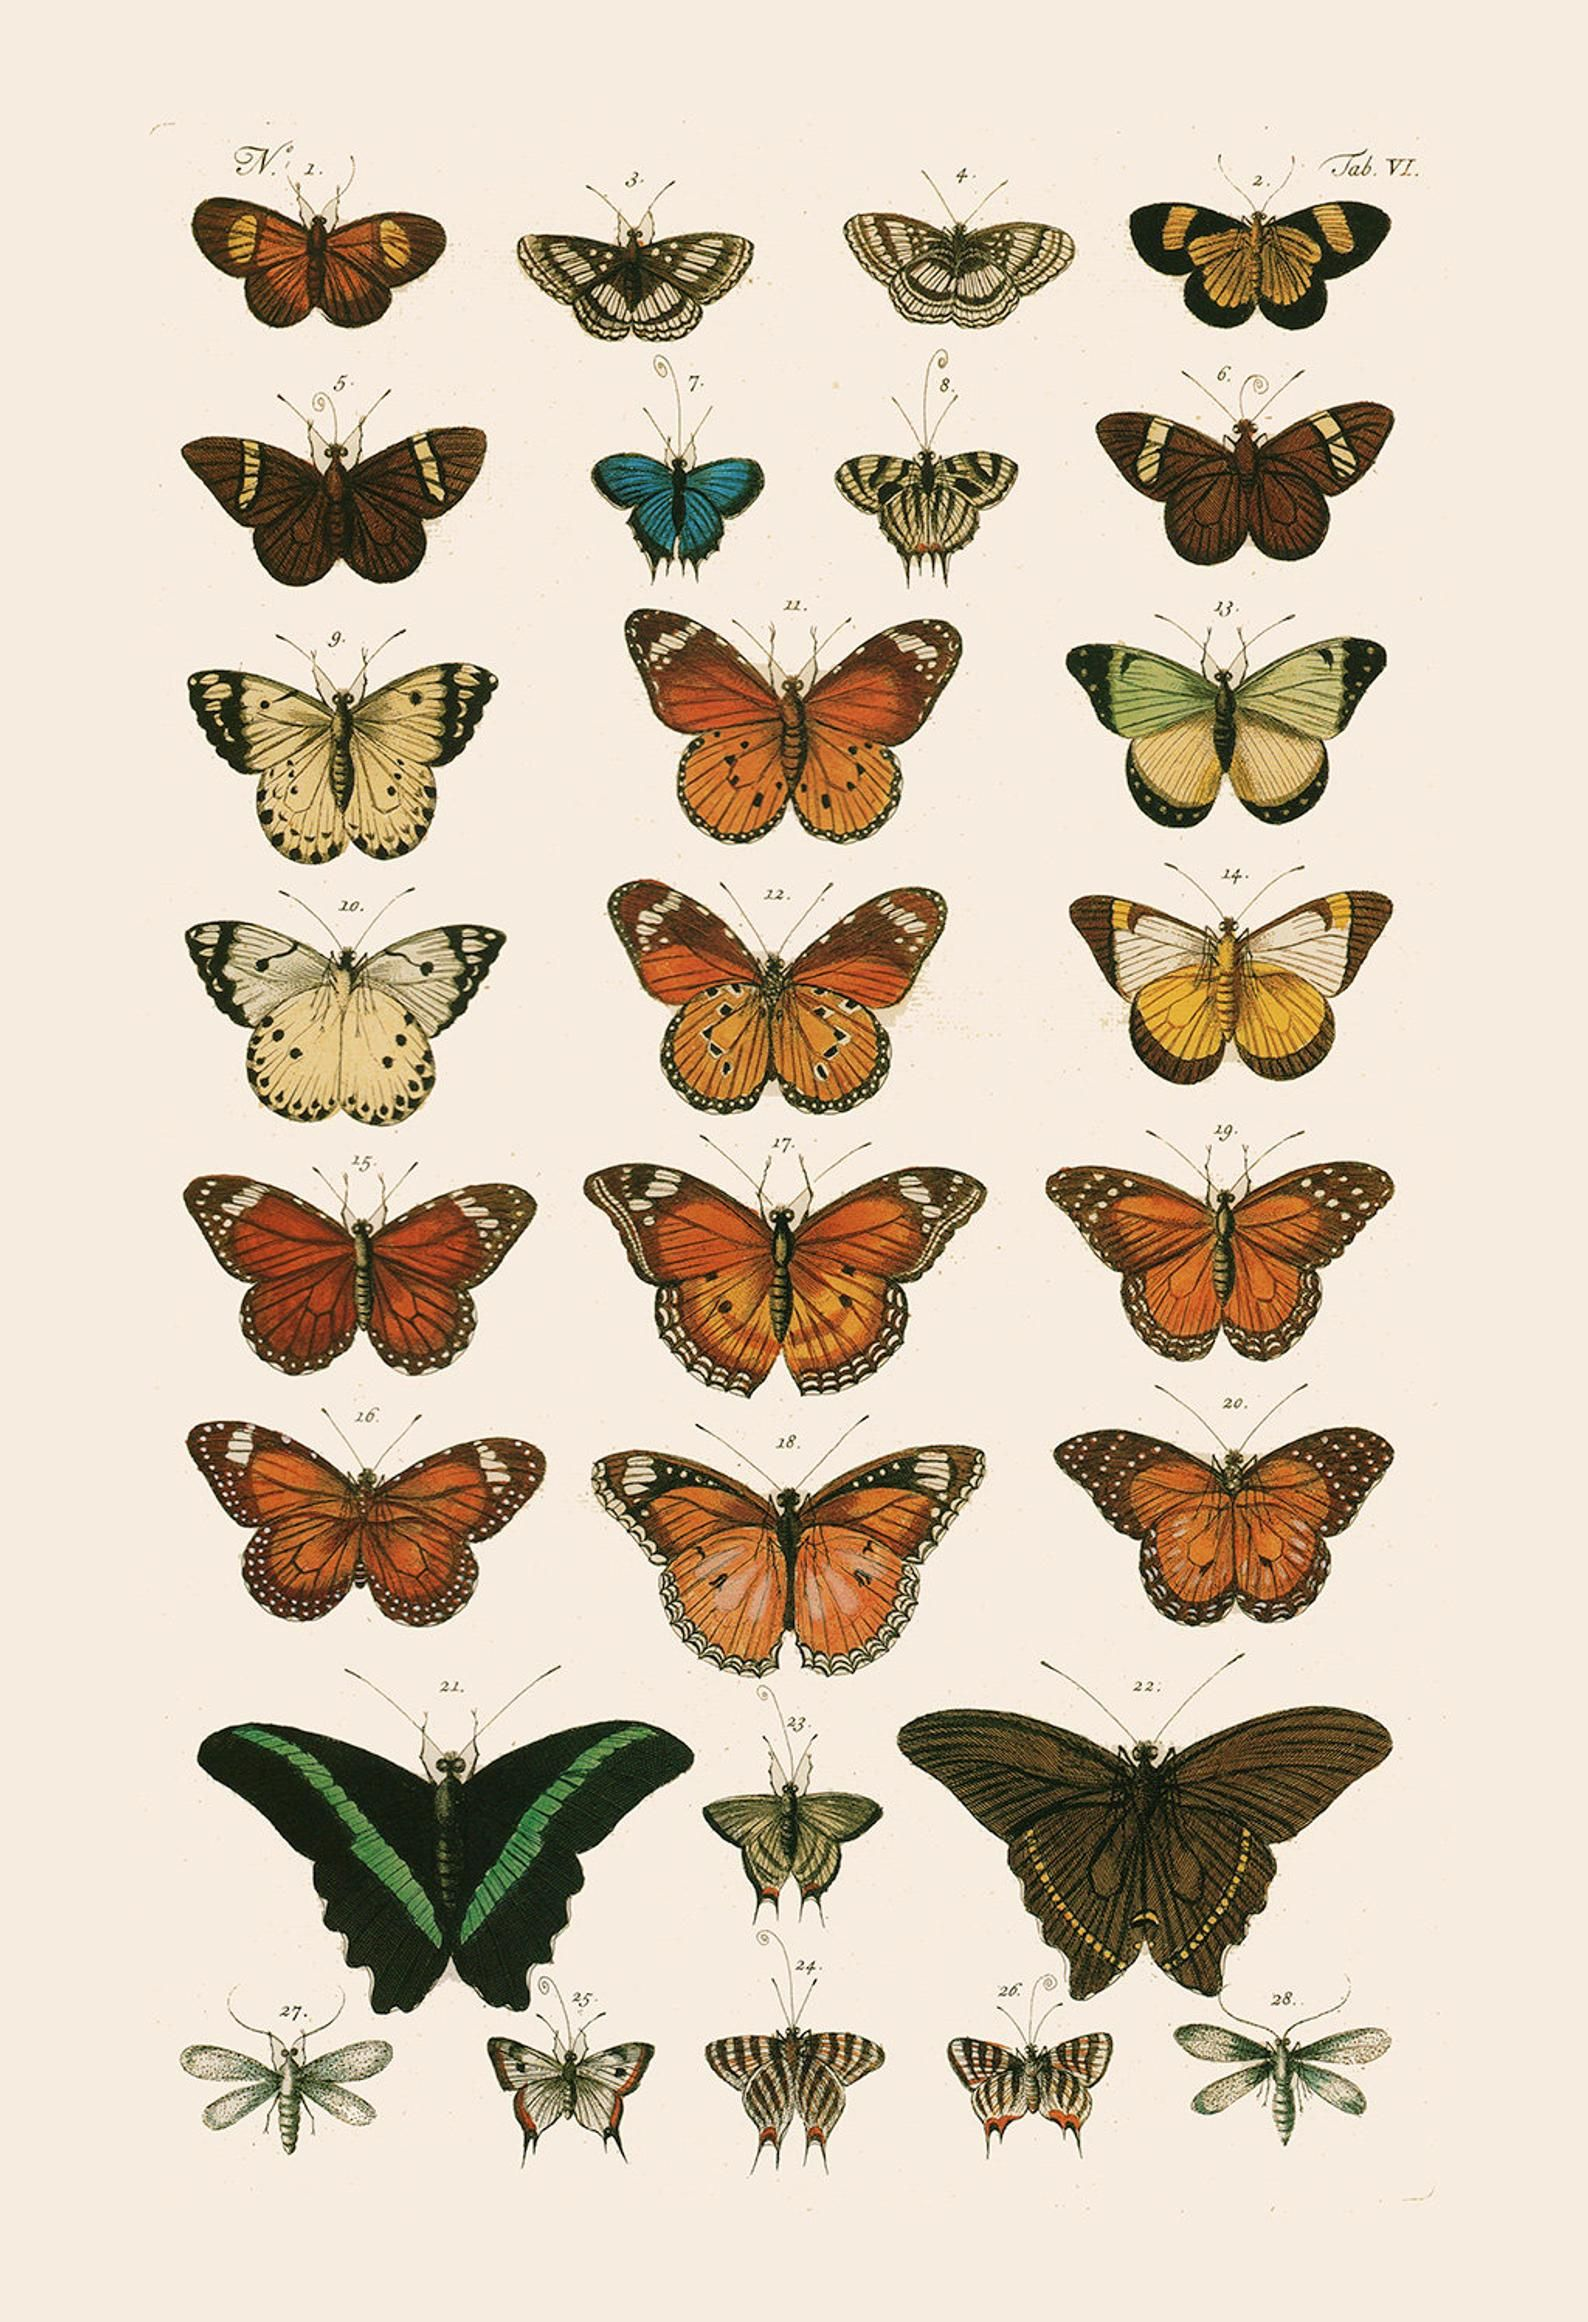 VINTAGE BUTTERFLY PRINT- High Quality Reproduction